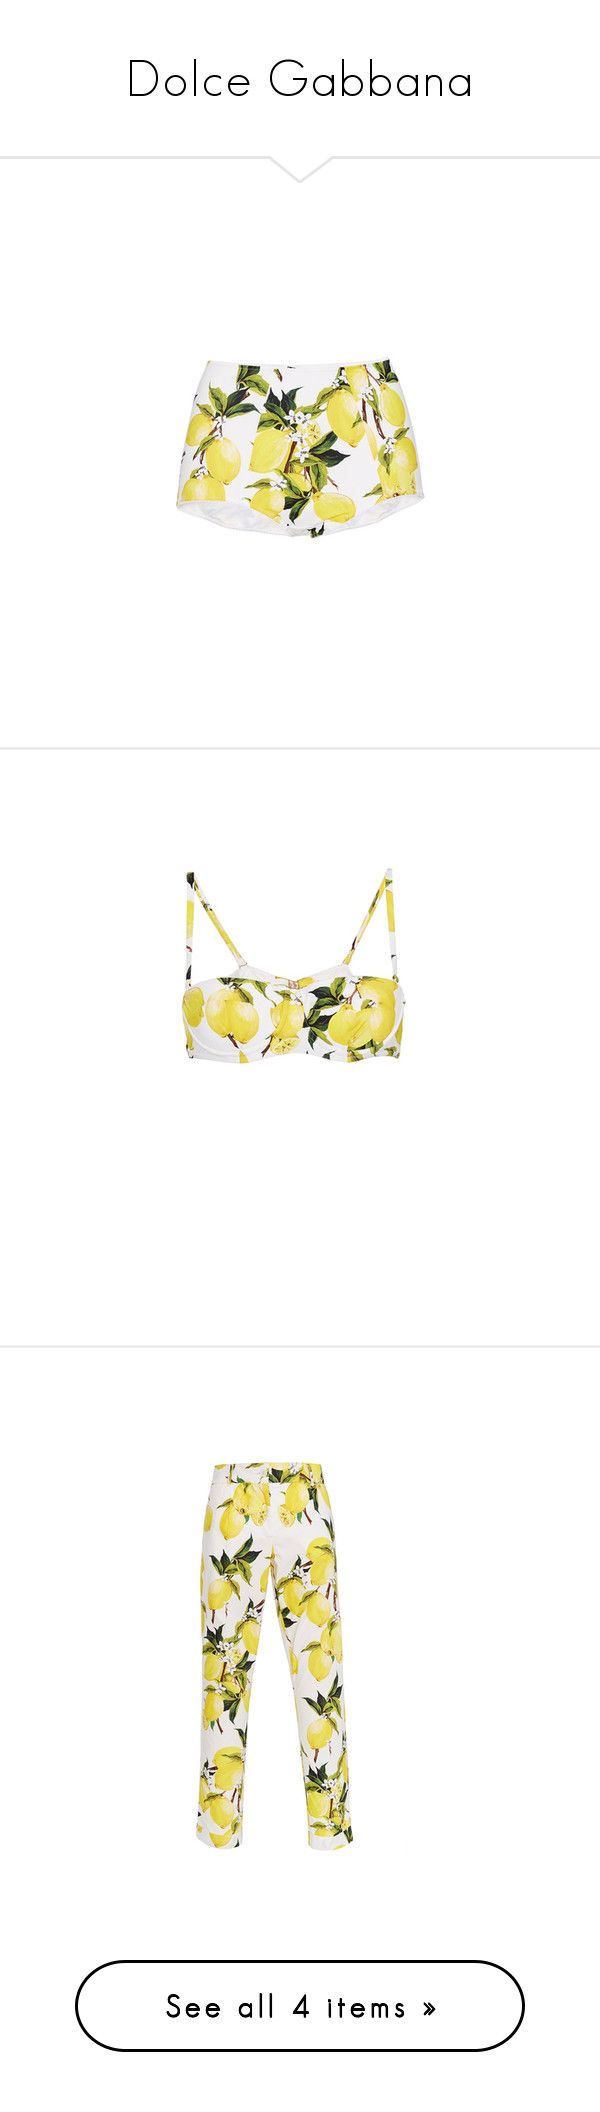 """""""Dolce Gabbana"""" by diane-fritz-sager ❤ liked on Polyvore featuring swimwear, bikinis, high waisted boy short bikini bottoms, highwaisted bikini bottoms, boy shorts swimwear, high-waisted swimwear, boy short bikini, bikini tops, swim and lemon bikini"""